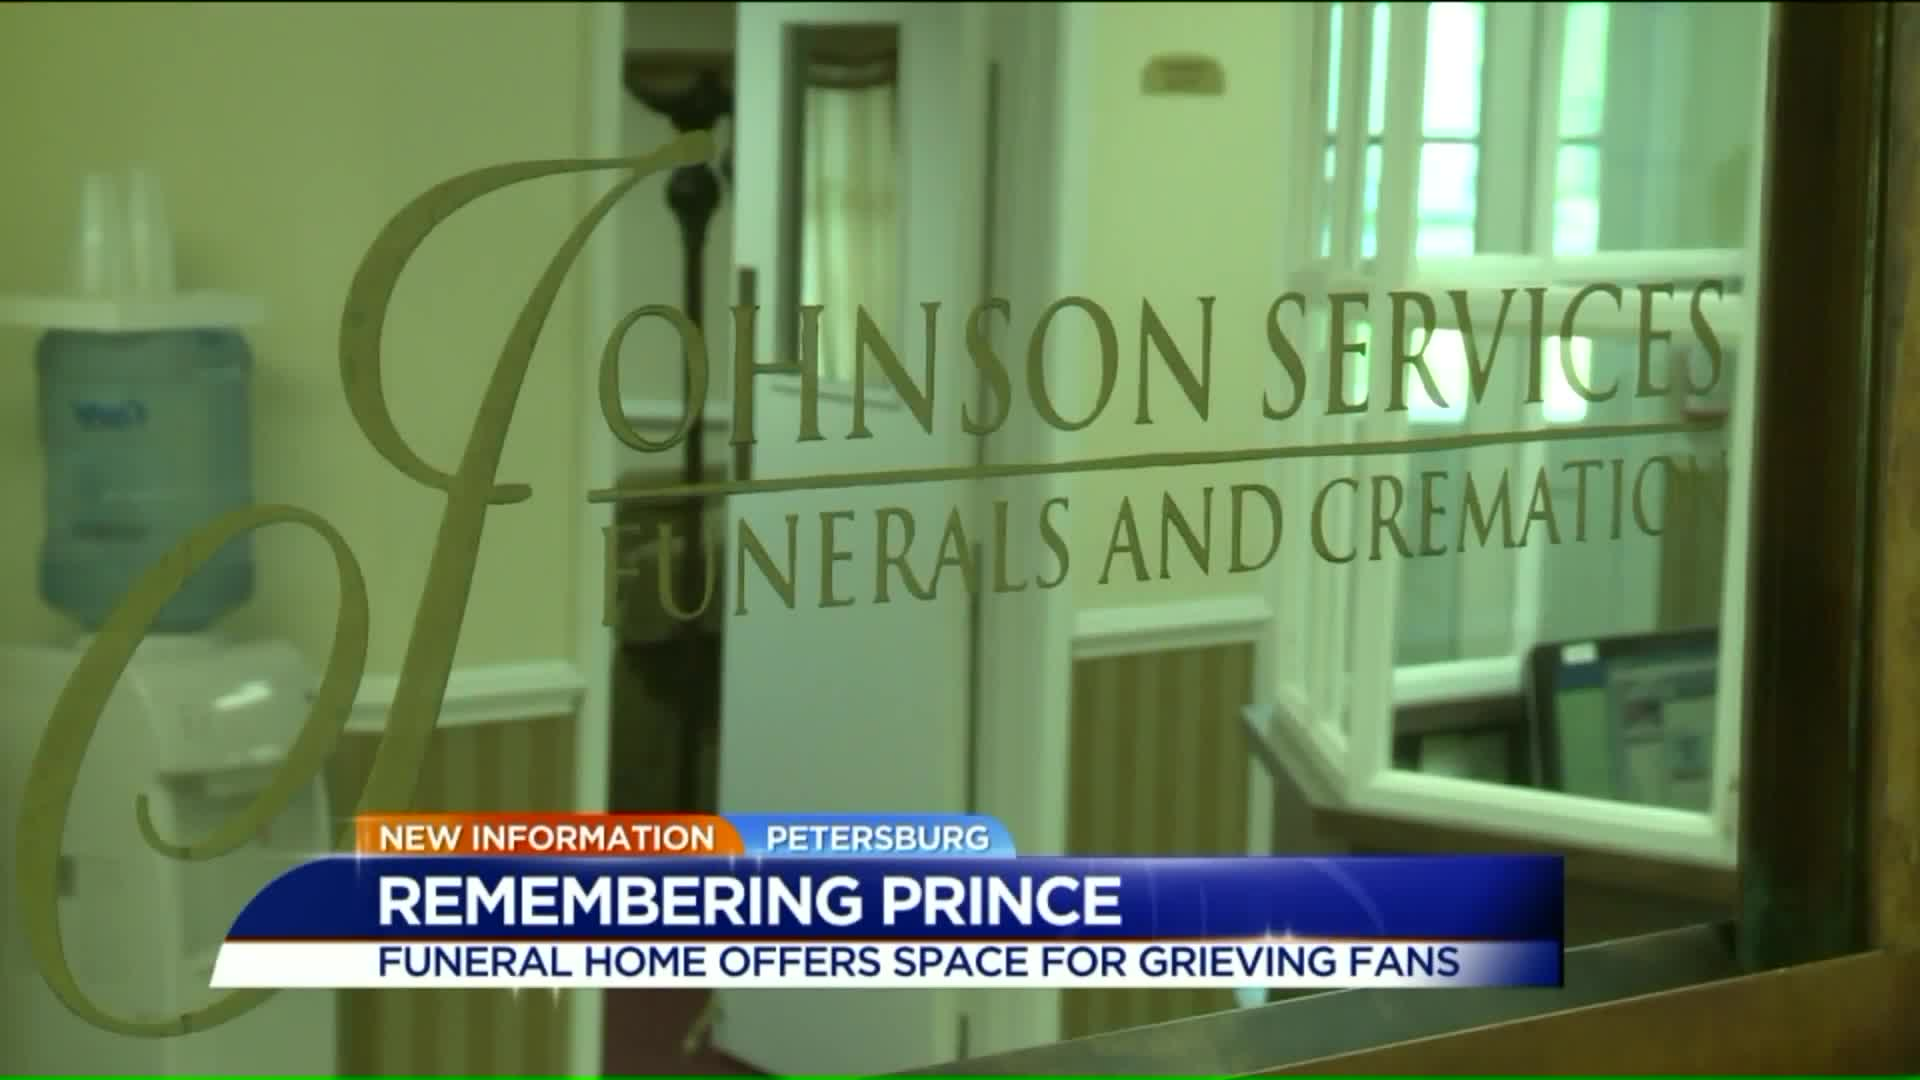 Virginia Funeral Home Opens Doors for Grieving Prince Fans